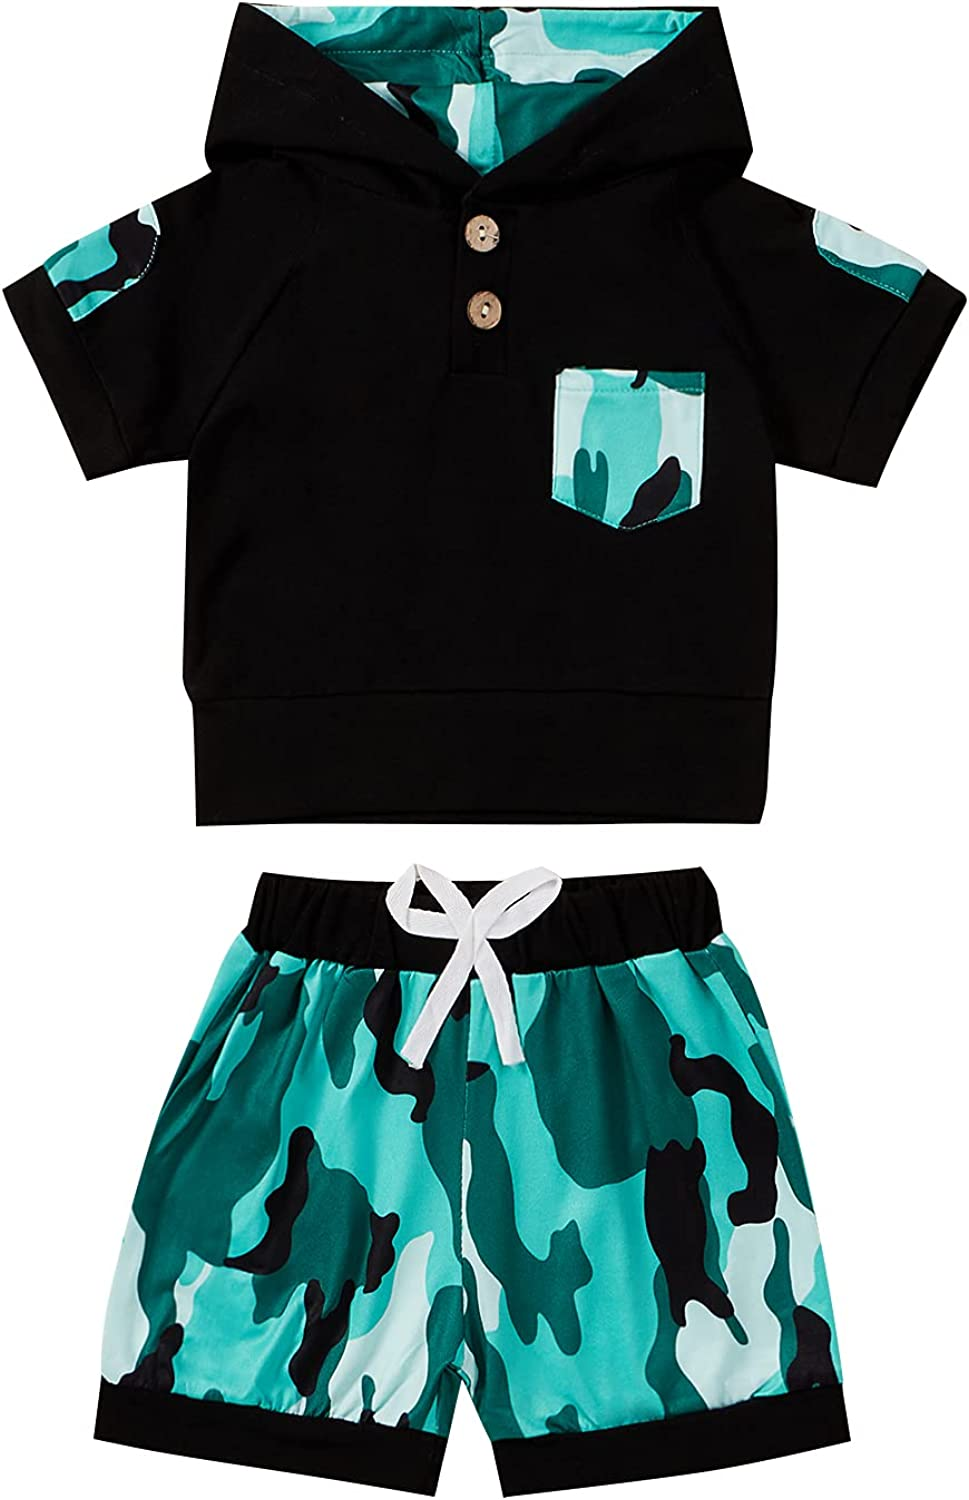 Toddler Baby Boy Short Sleeve Hooded Shirt Tops Camouflage Shorts with Drawstring Summer Clothes Set